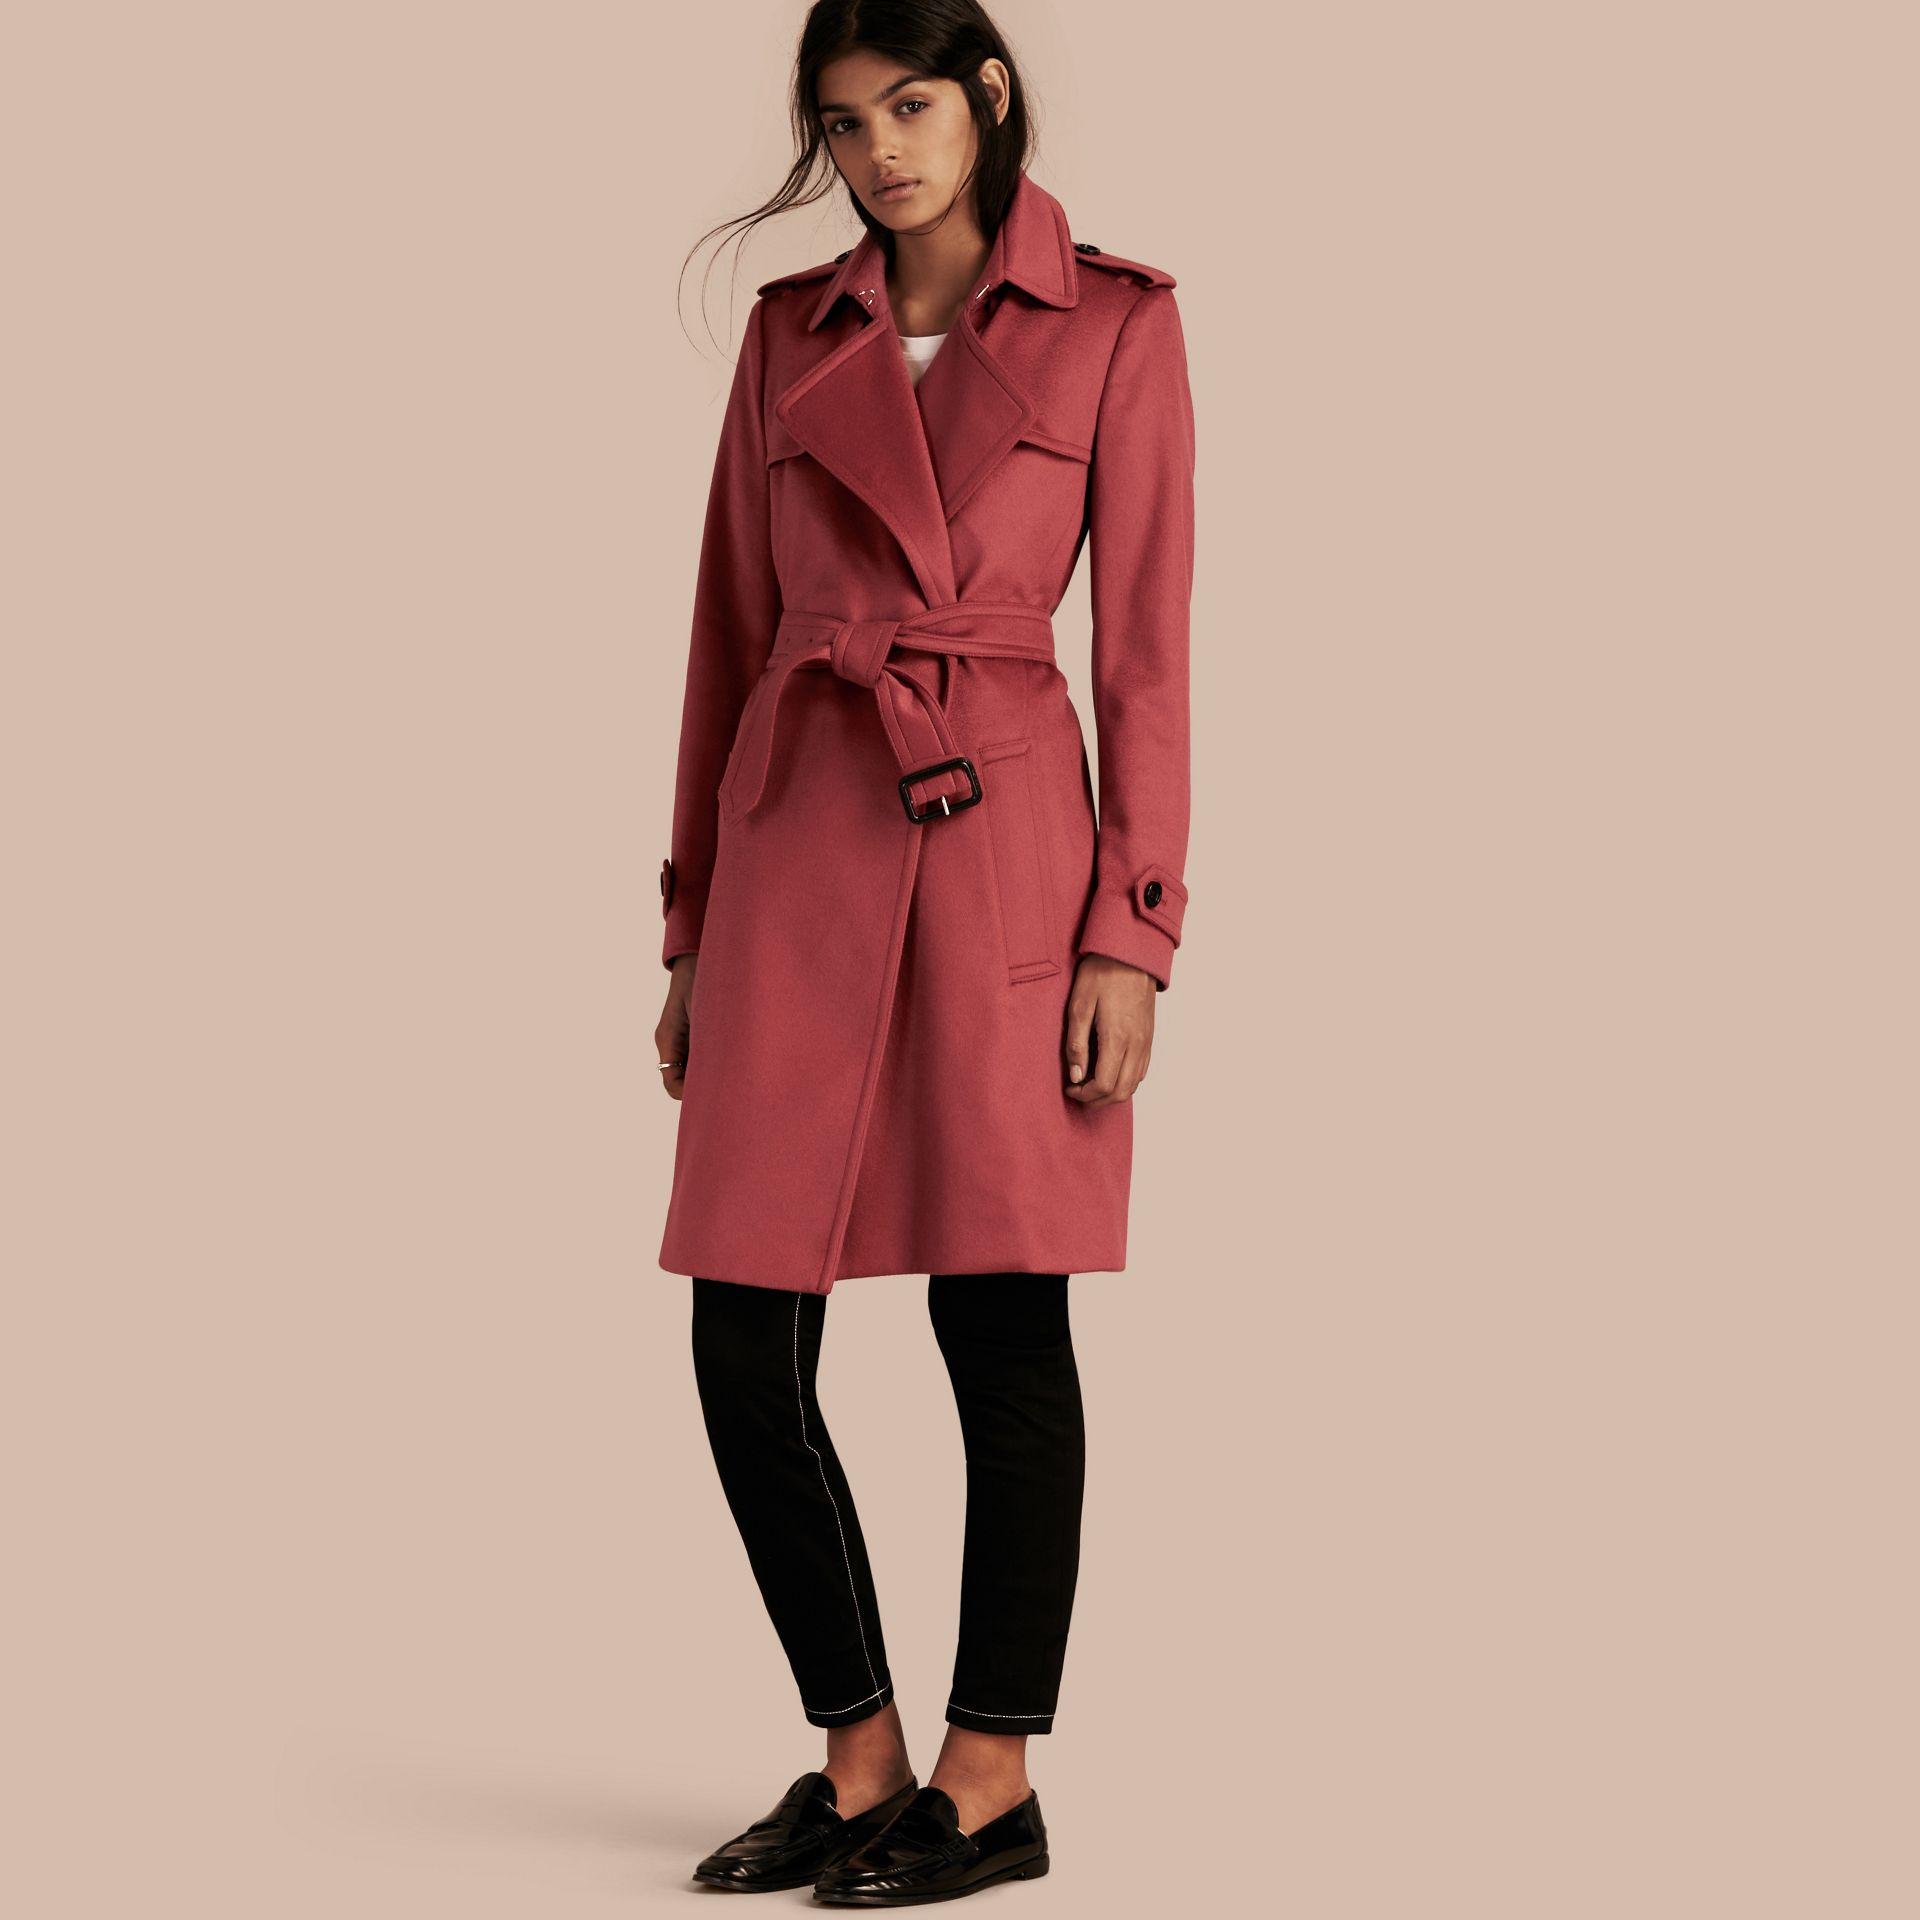 Dusty peony rose Cashmere Wrap Trench Coat Dusty Peony Rose - gallery image 1